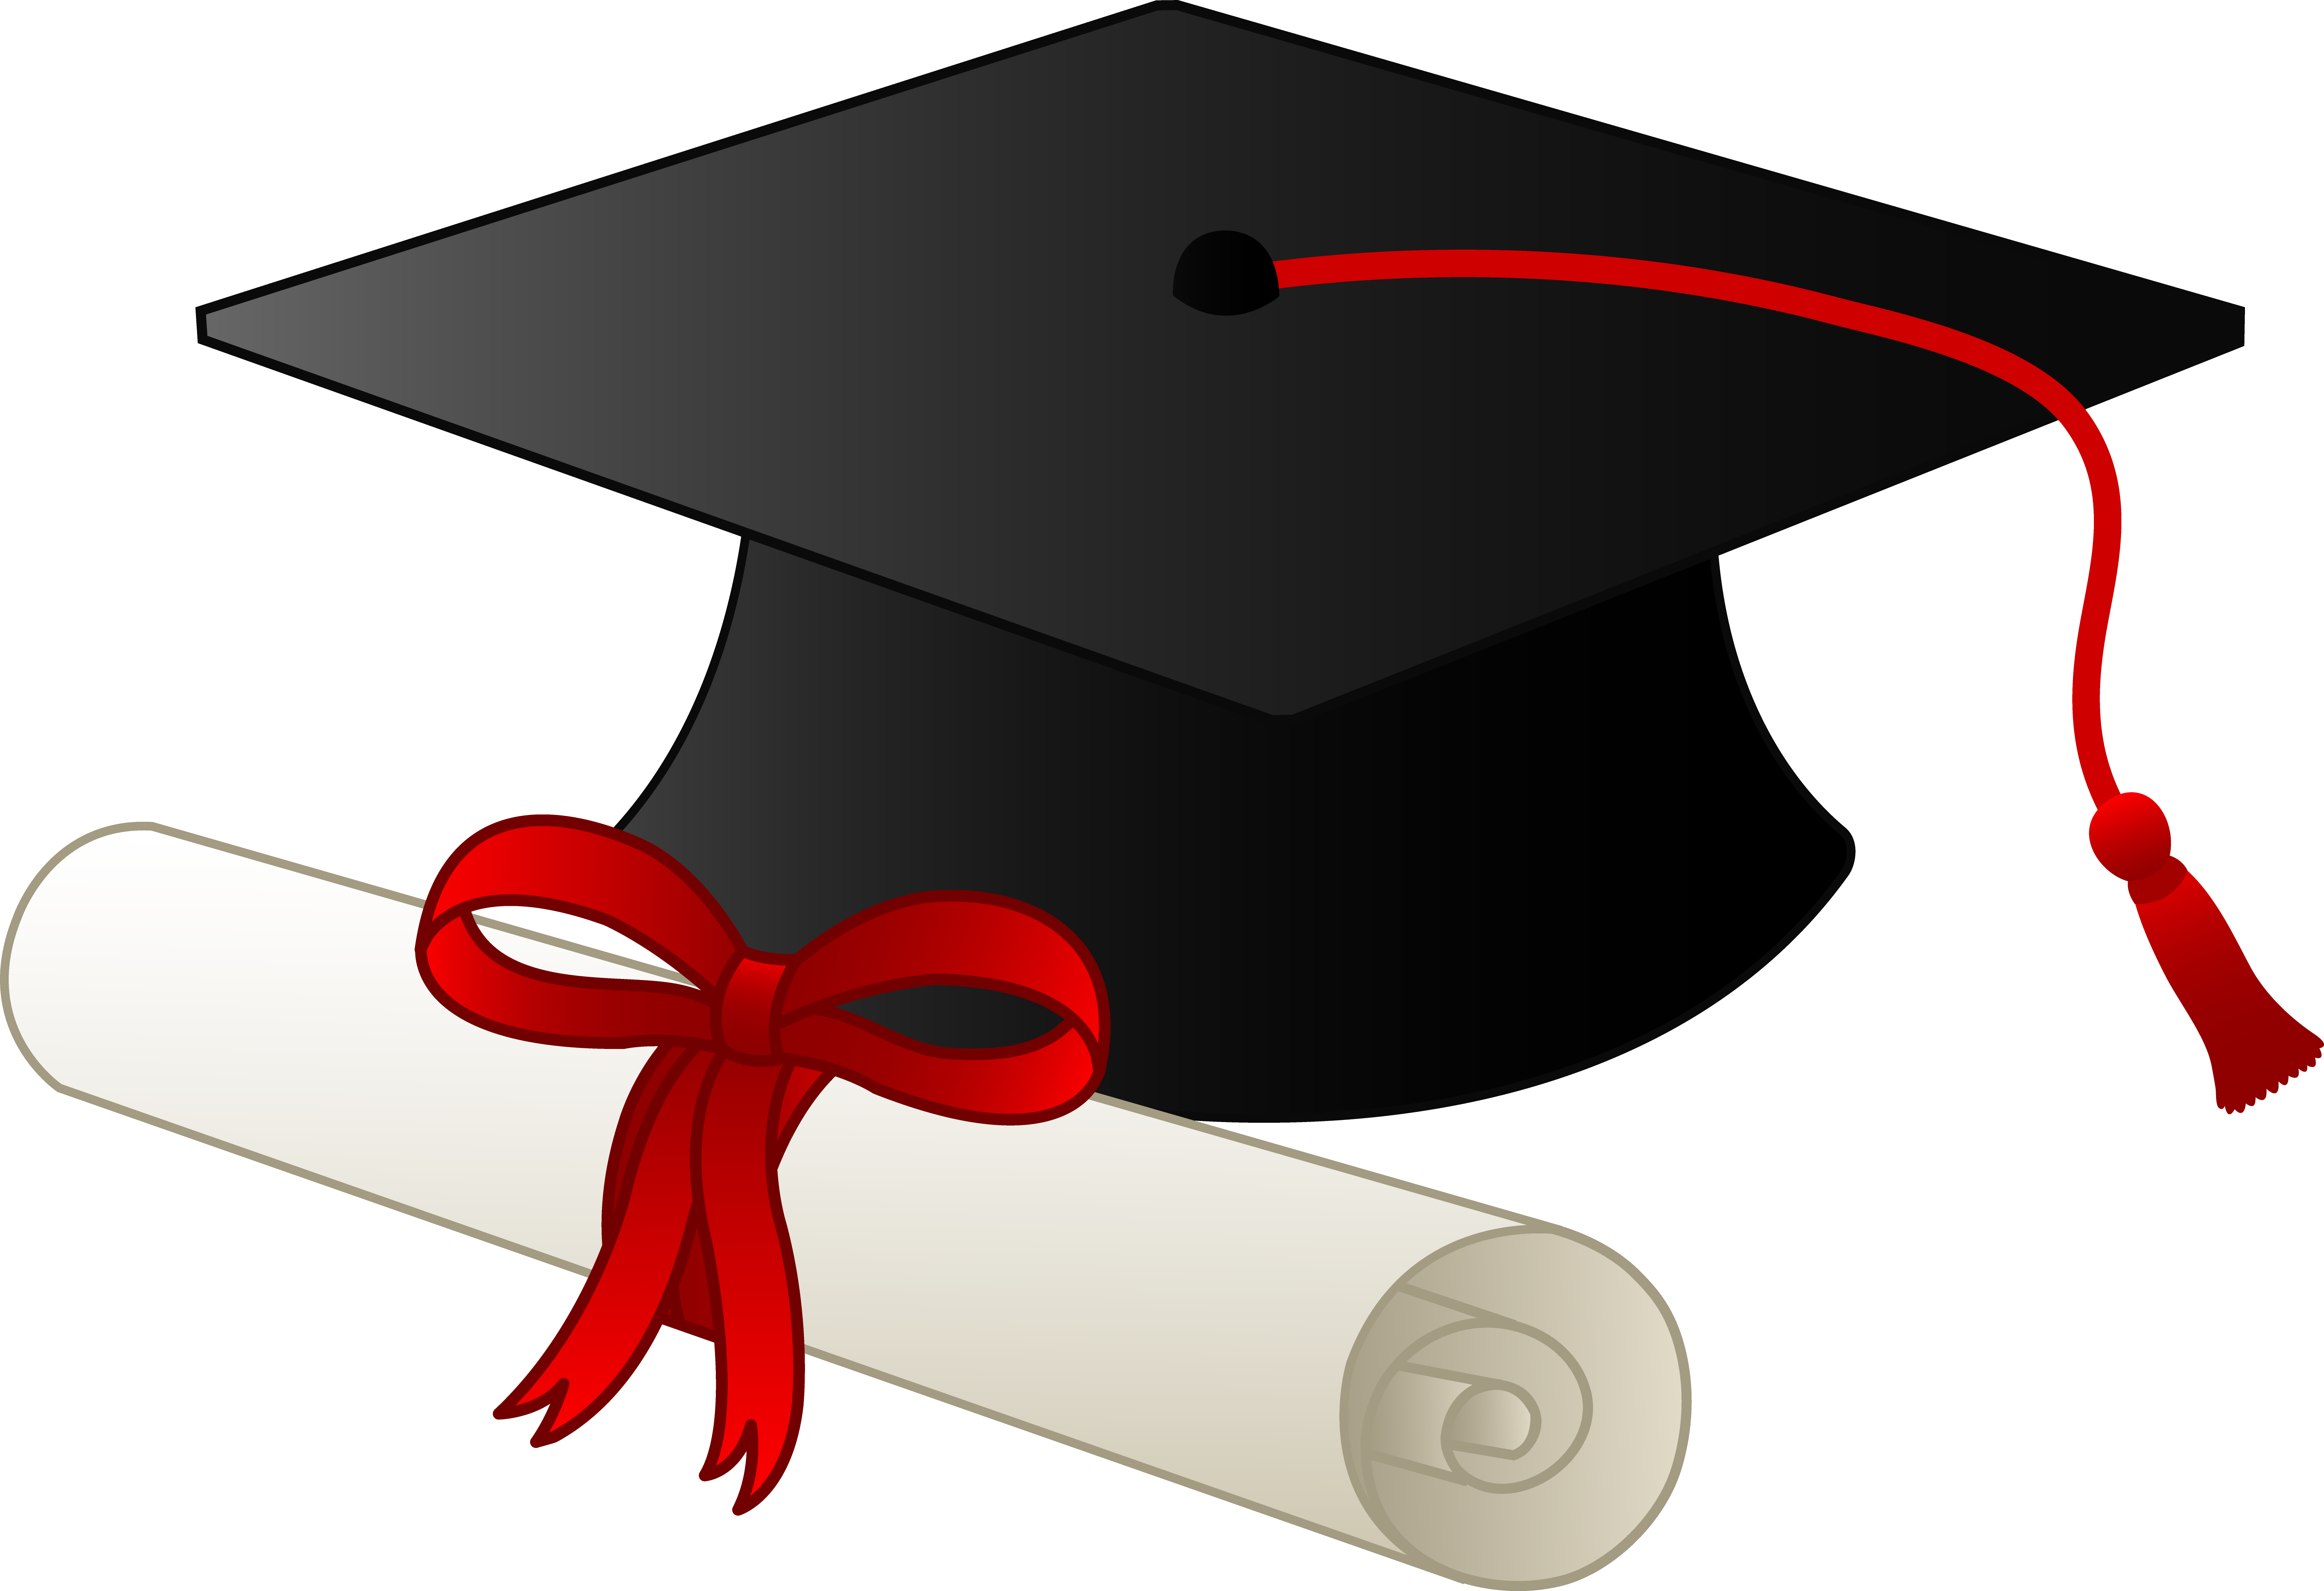 Scholarship money clipart clip free download REACH scholarship aims to give opportunity to those with aptitude ... clip free download